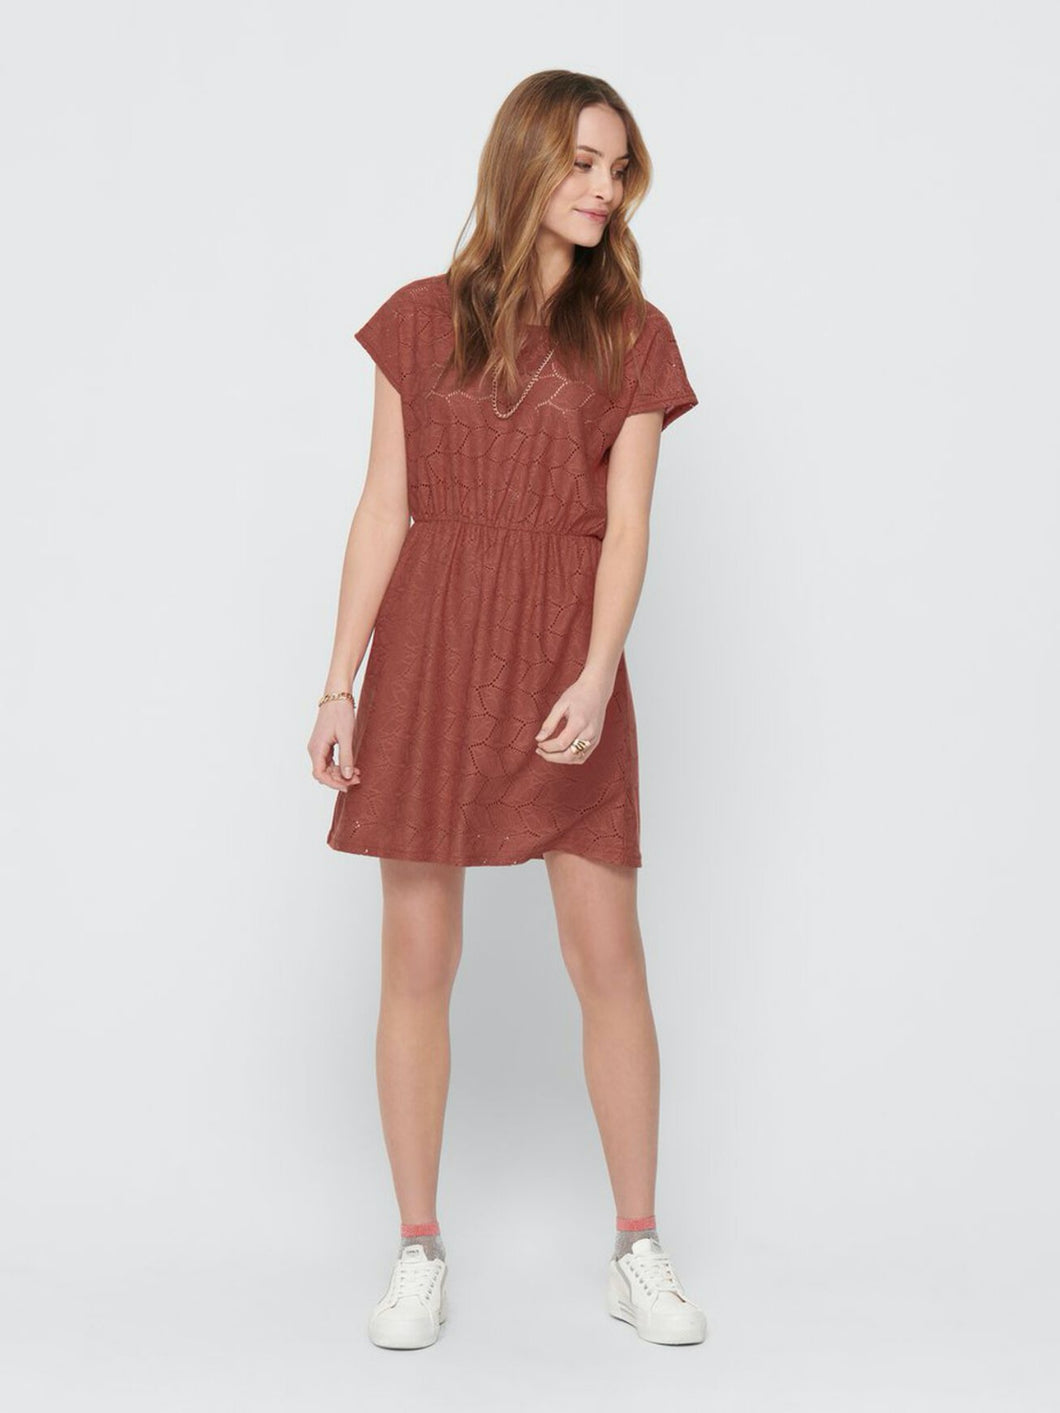 Tag Treats Dress - Etruscan Red / XS - KLÄNNINGAR DAM, GRÖN,